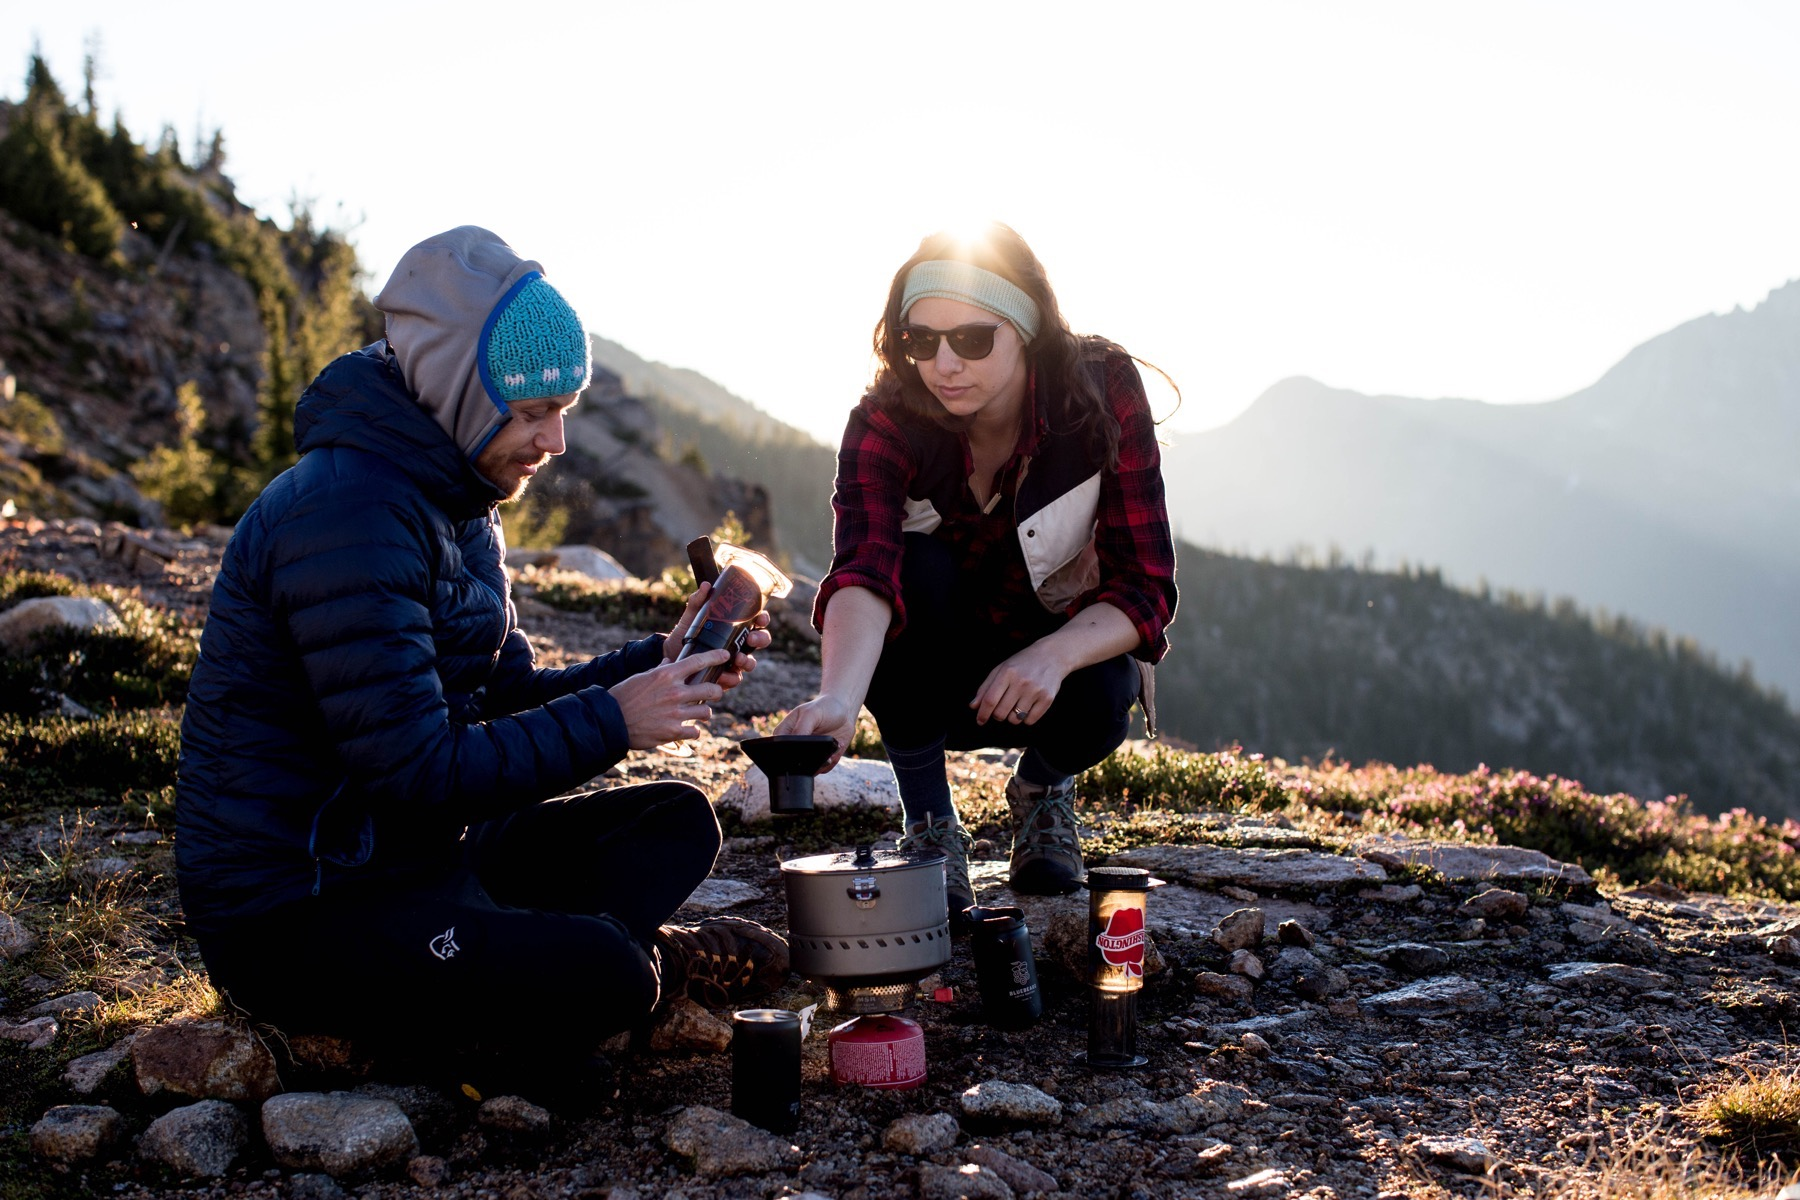 Travel coffee kit essentials. Making coffee during sunrise on a backpacking trip in summer.Photo by Brooke Fitts